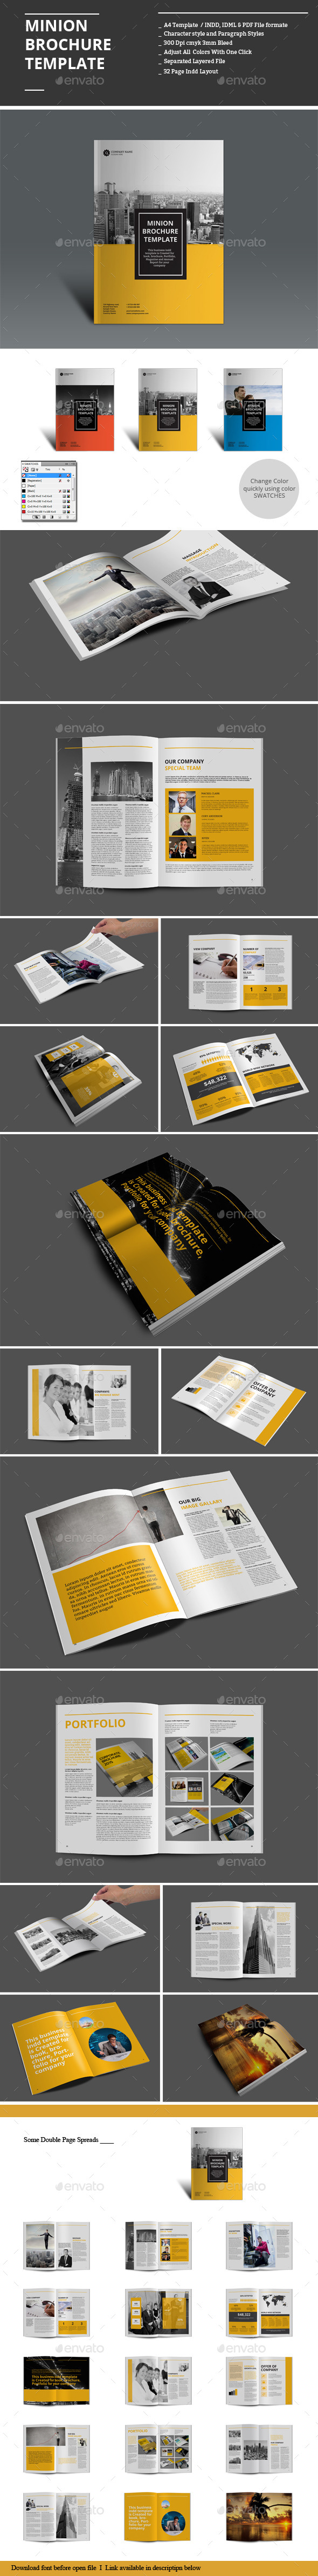 Minion Brochure Templates | Folleto corporativo, Folletos y Arte